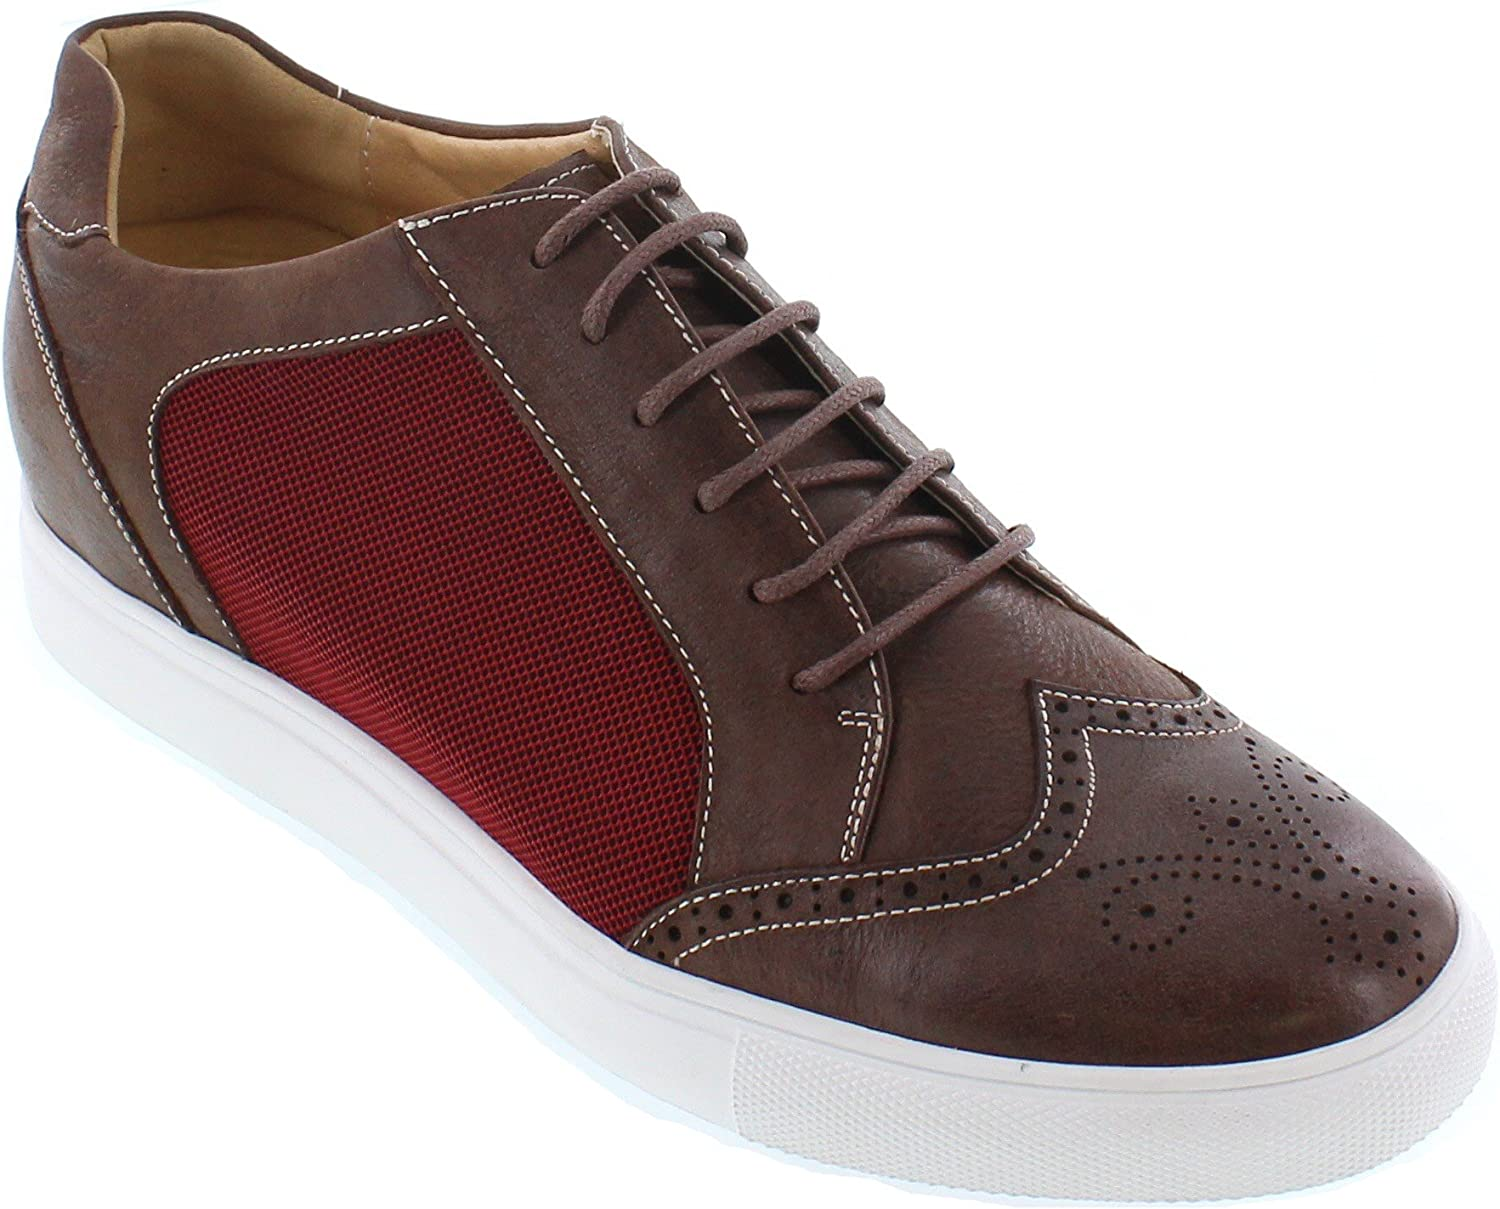 CALTO Men's Invisible Height Increasing Elevator shoes - Brown & Metallic Red Leather Mesh Lace-up Lightweight Fashion Sneakers - 2.4 Inches Taller - J9108